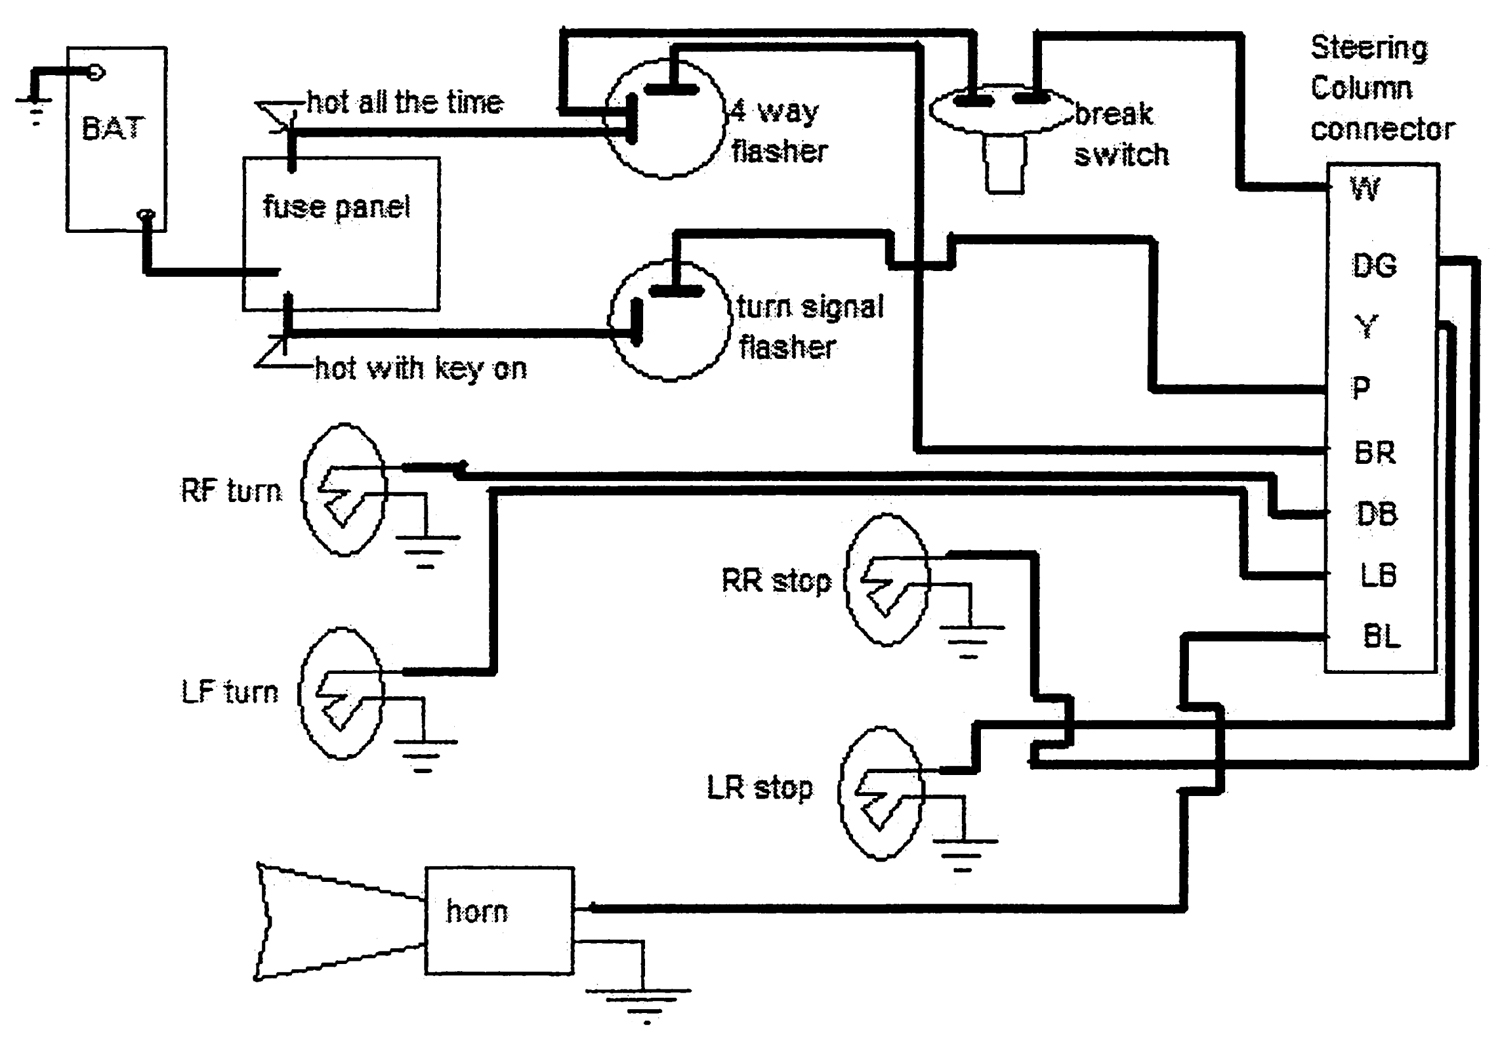 elect sycmatic tech tips Basic Electrical Wiring Diagrams at fashall.co